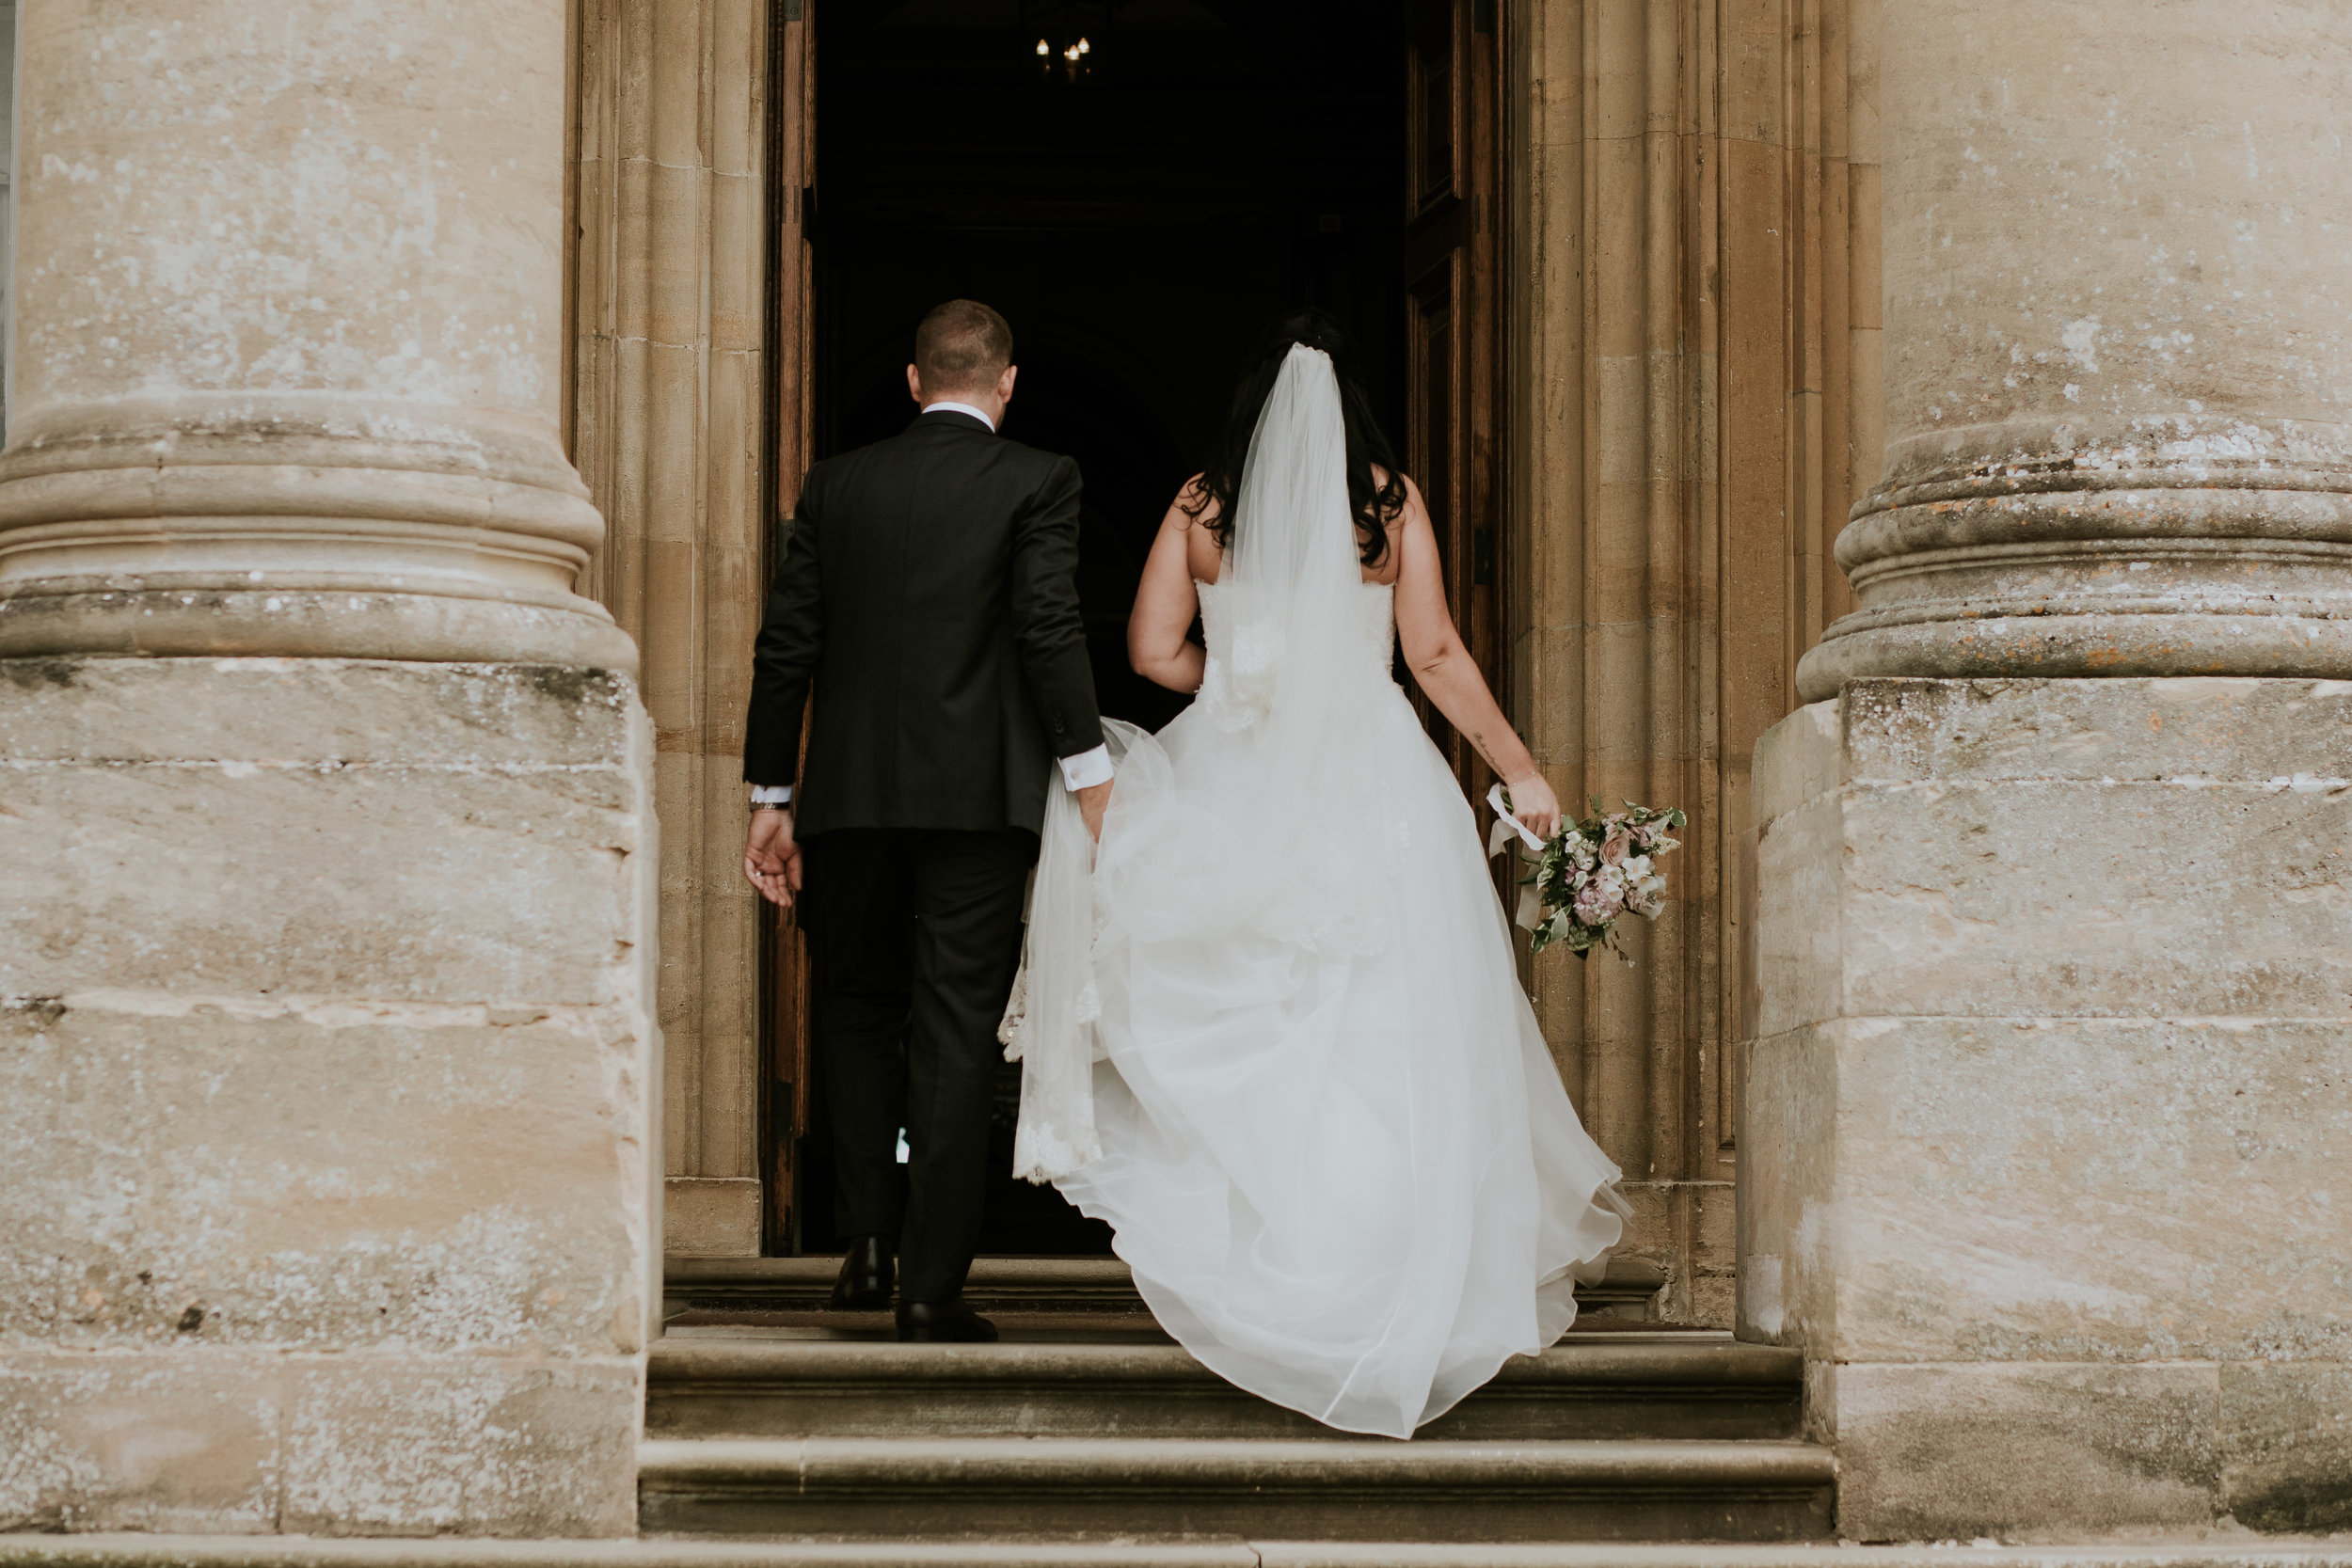 oxford-wedding-heythrop-park-sam-maz-photography-kelechianna-116.jpg